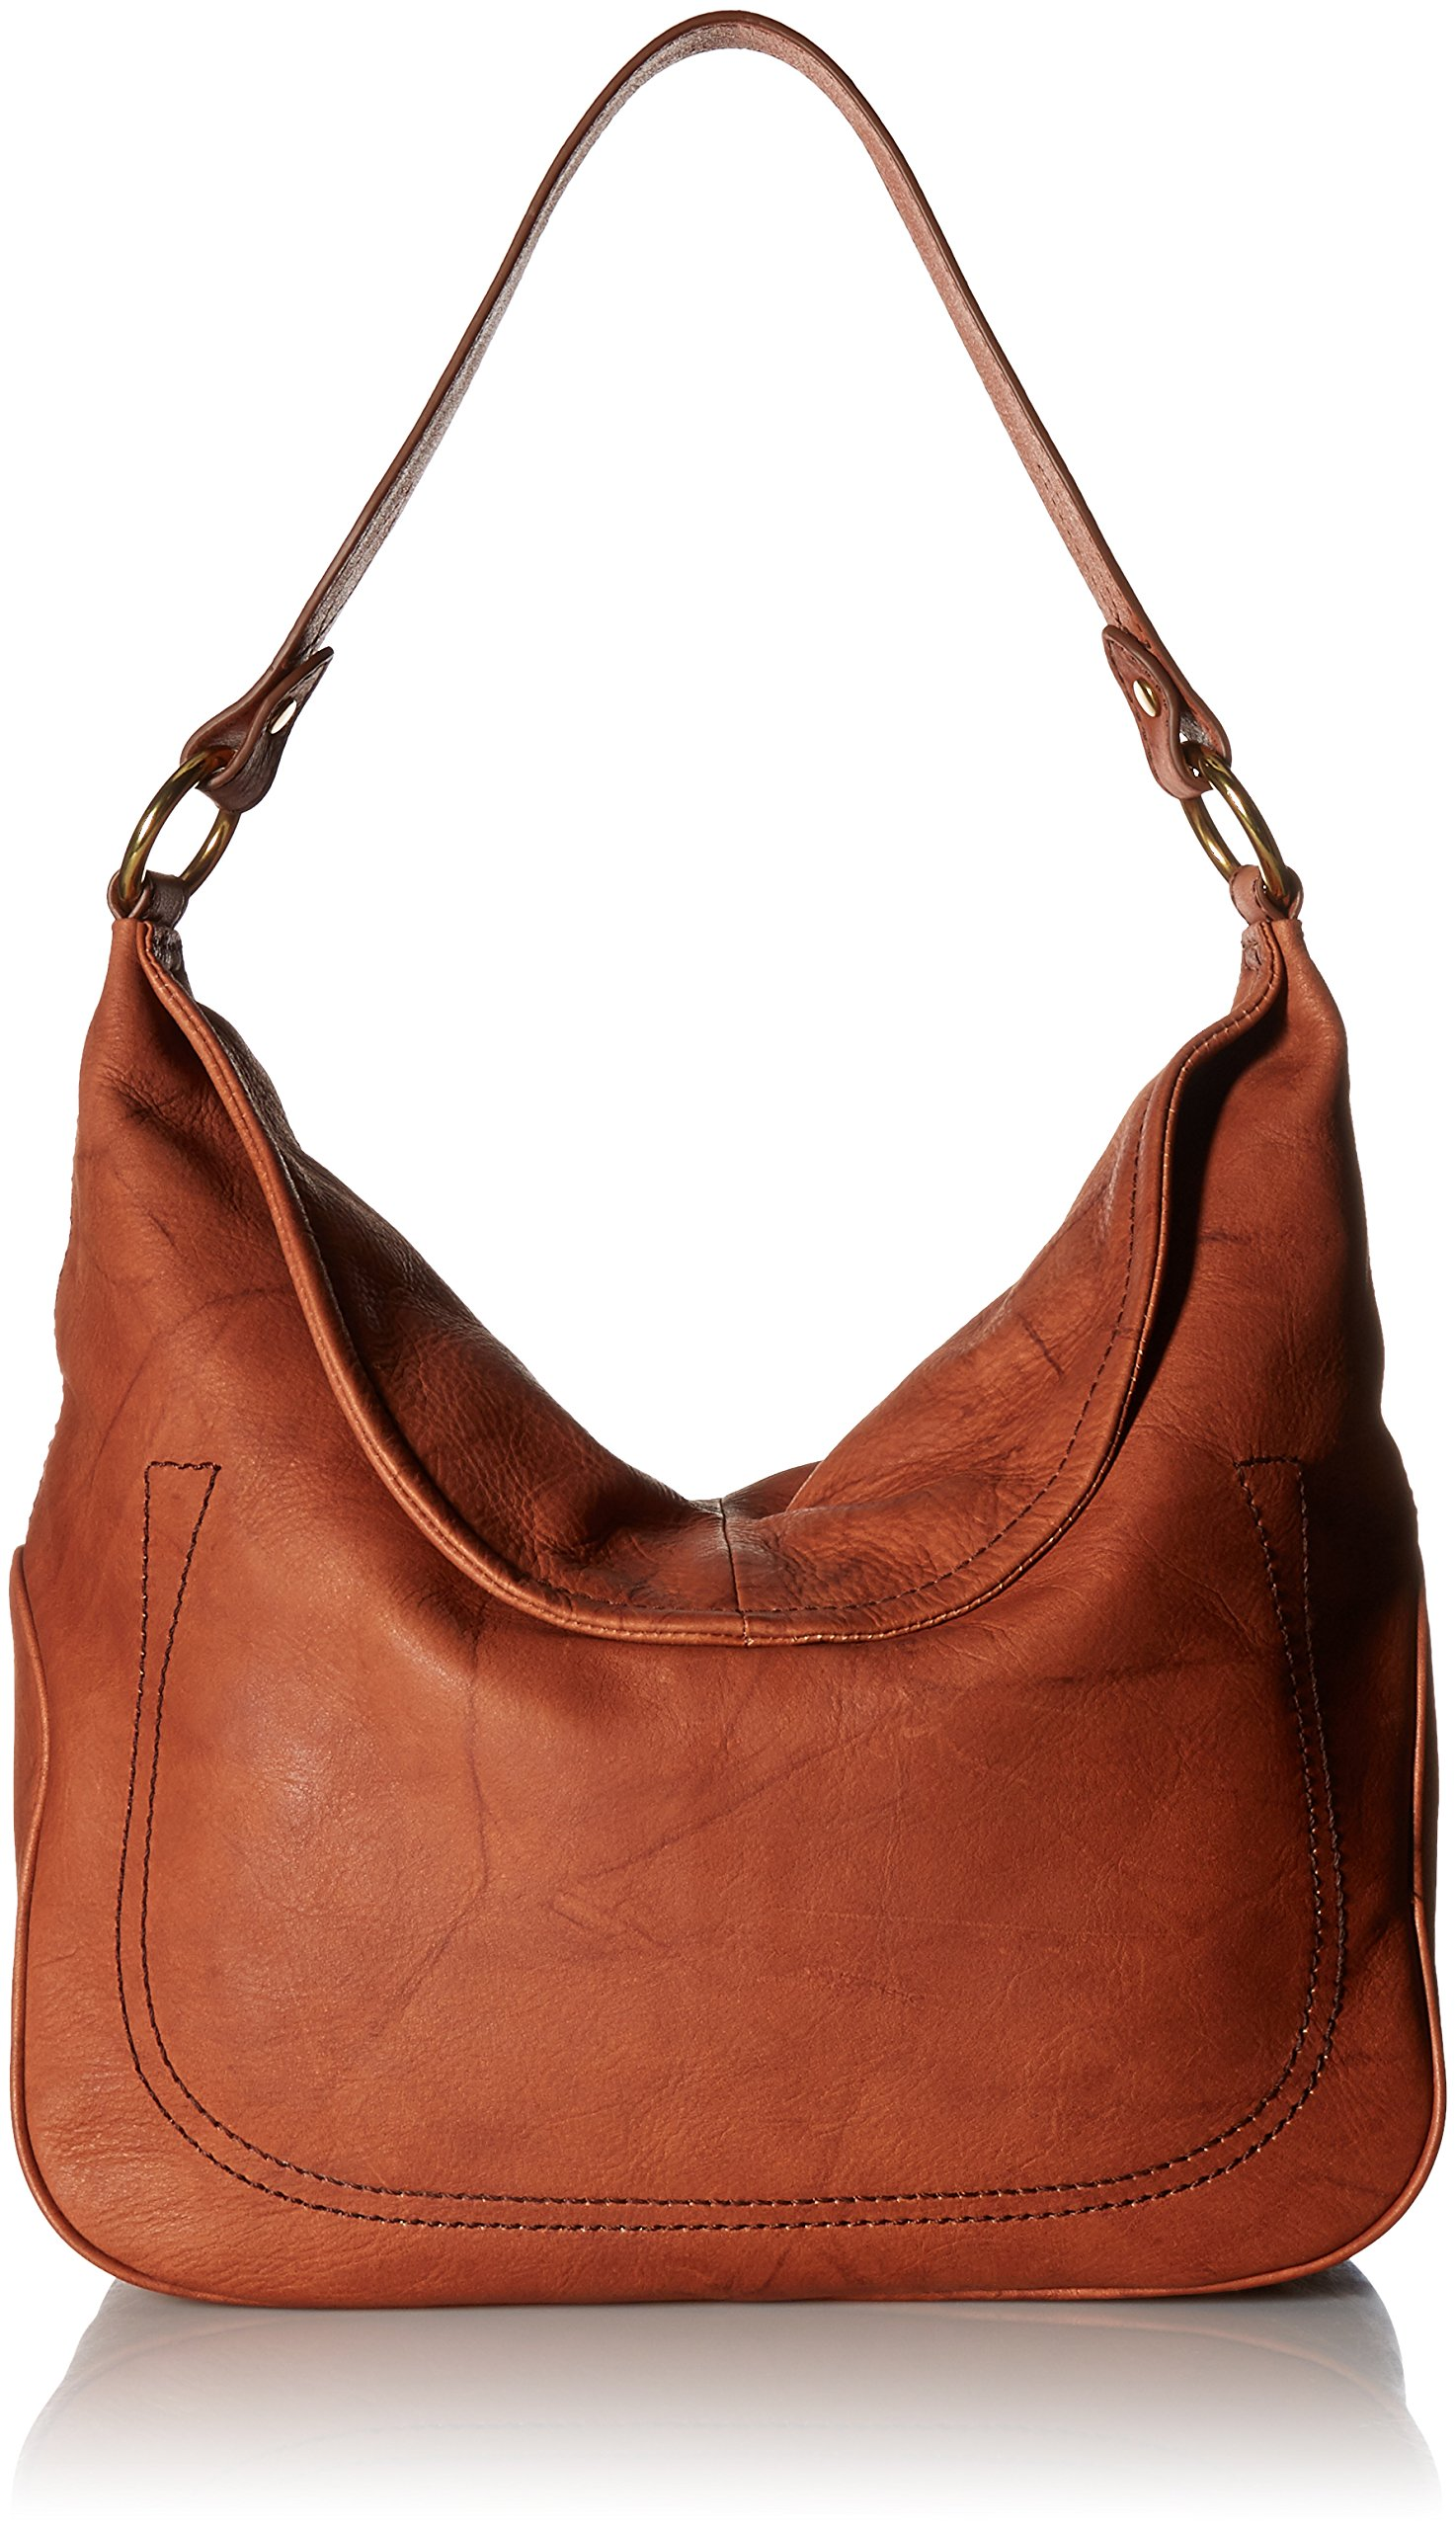 FRYE Campus Large Rivet Hobo, Saddle